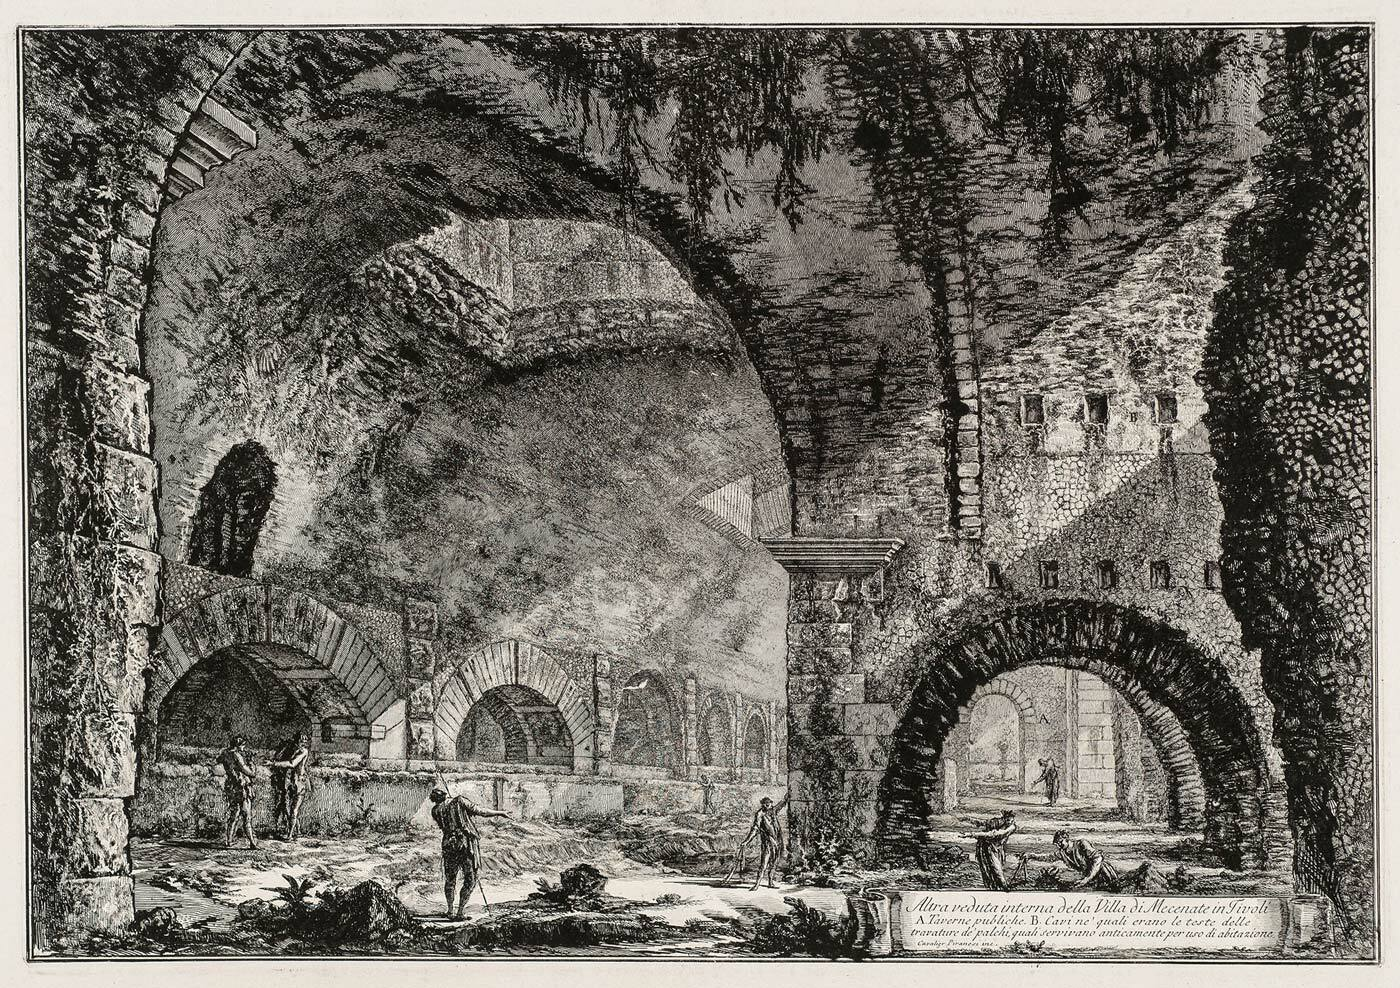 Altra Veduta interna della Villa di Mecenate in Tivoli, Vedute di Roma by Piranesi (collection KABK Library)